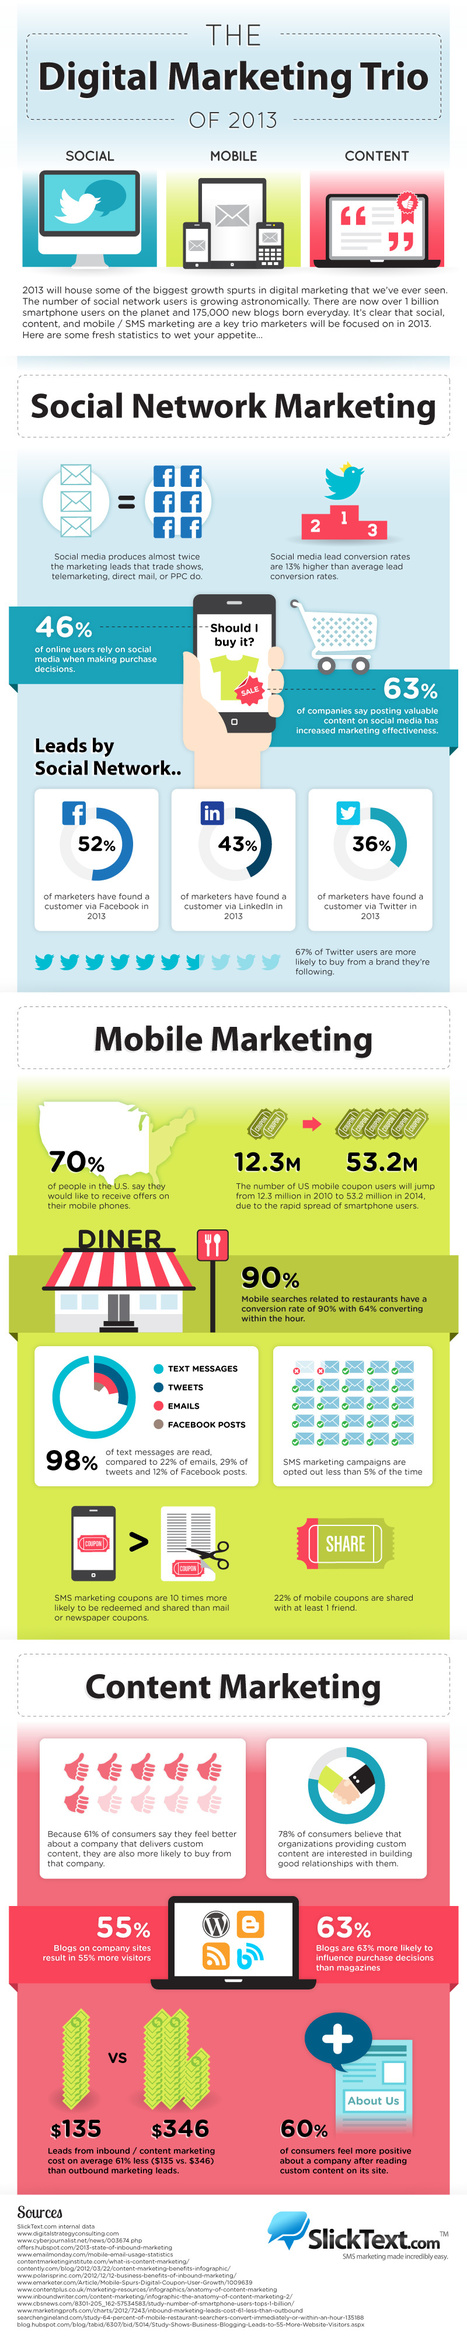 The Digital Marketing Trio Of 2013 [Infographic] | Ken's Odds & Ends | Scoop.it